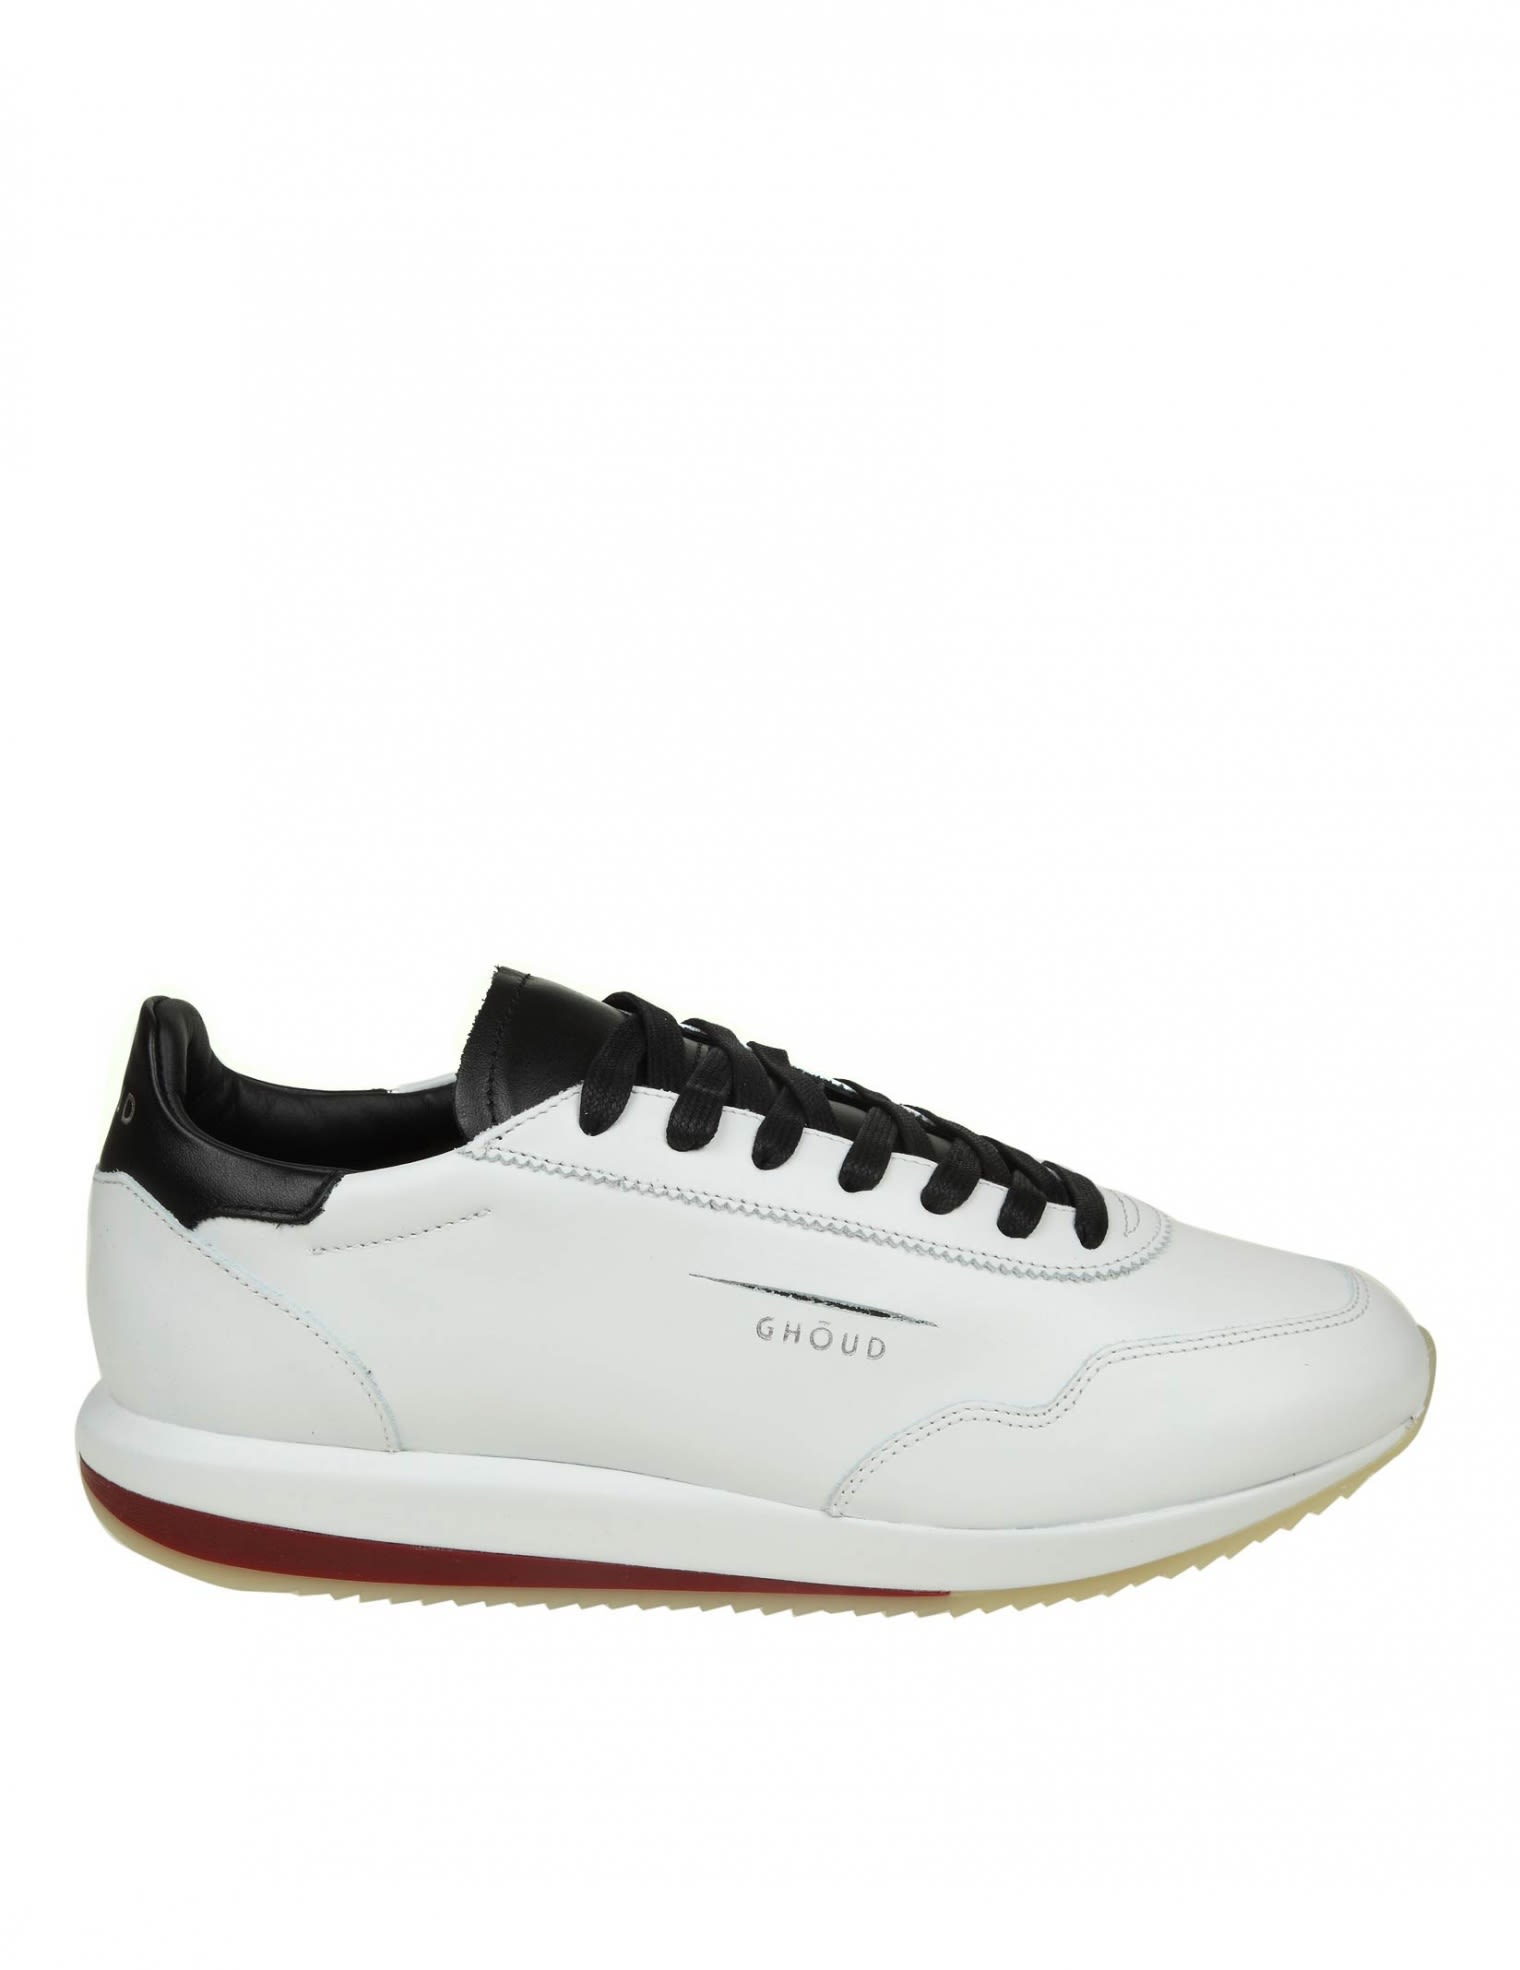 GHOUD SNEAKERS IN WHITE LEATHER